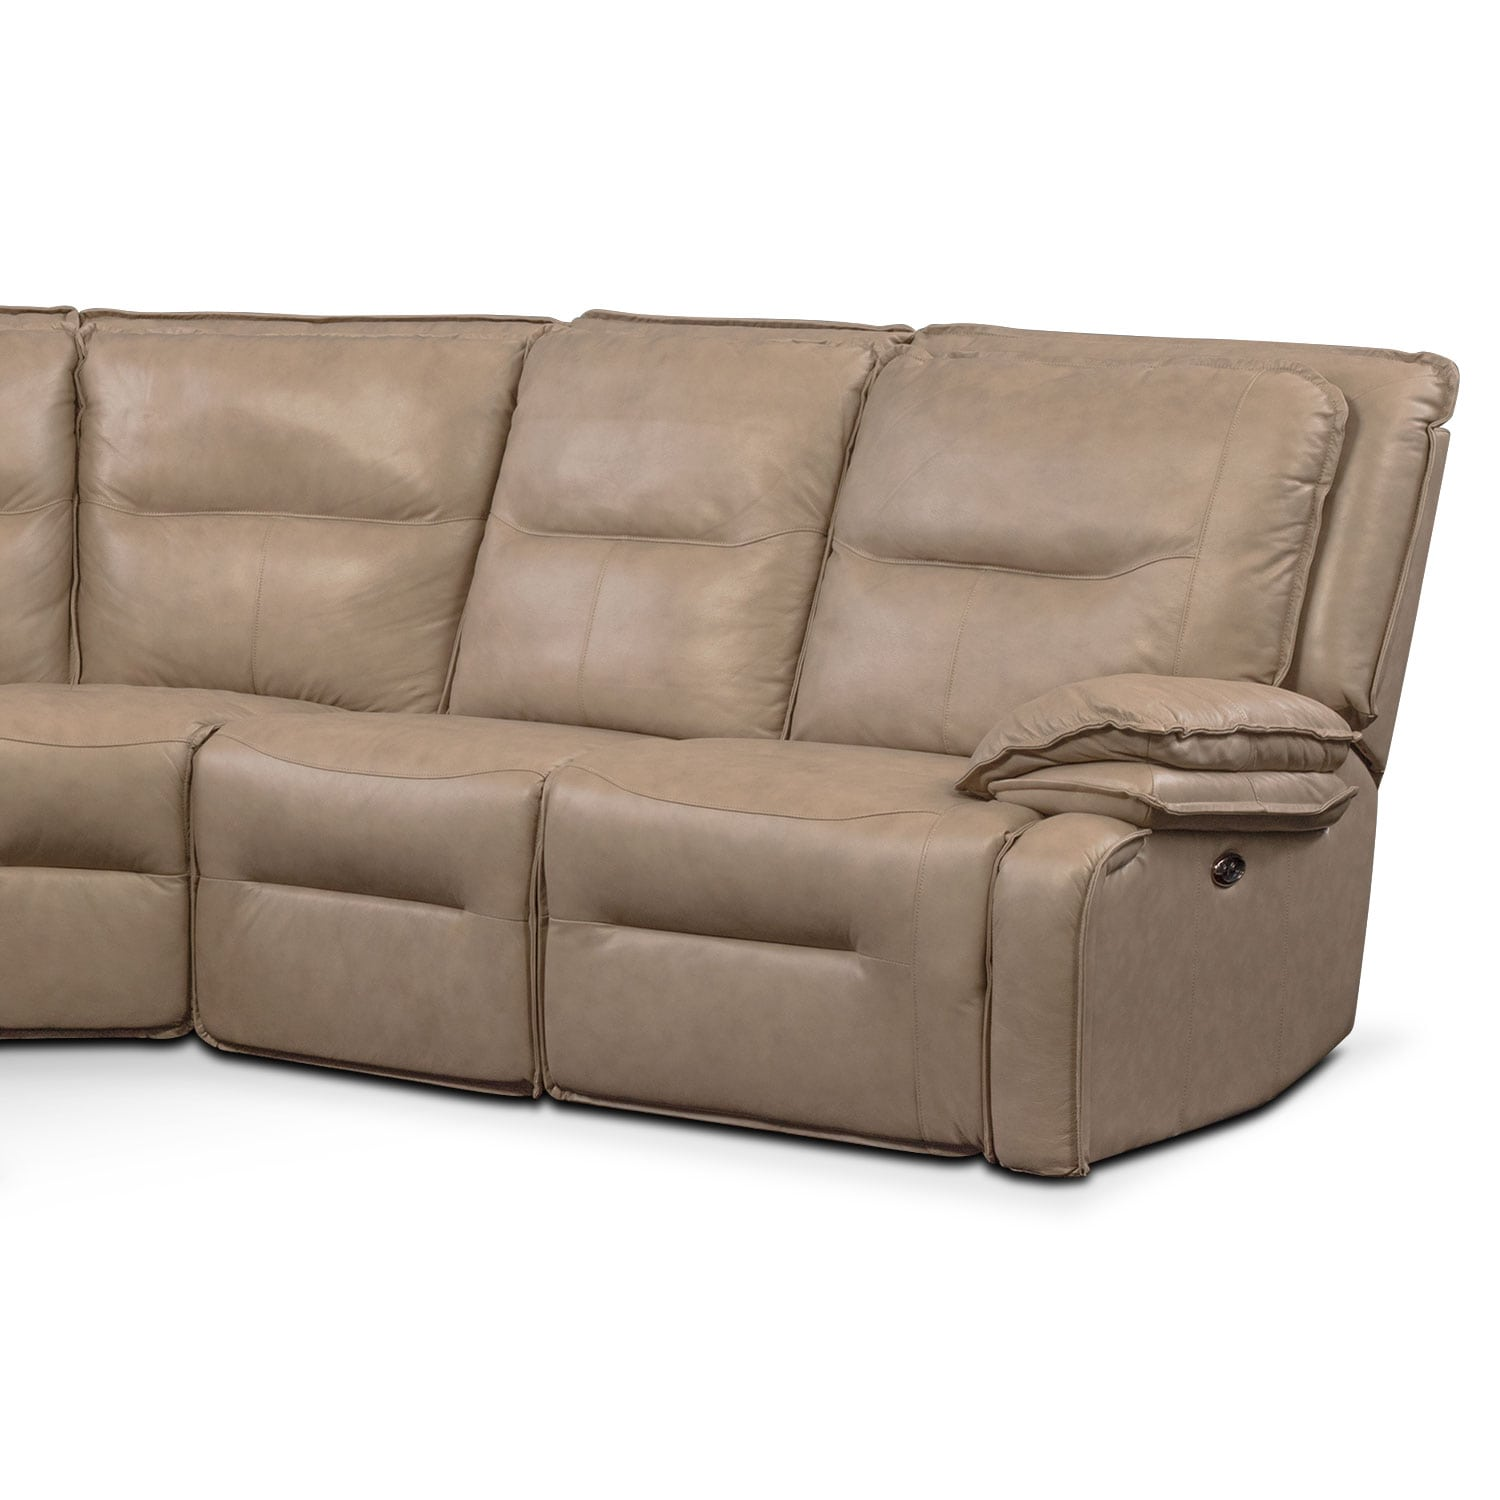 28 power reclining sectional sofa with chaise st malo 3 pie